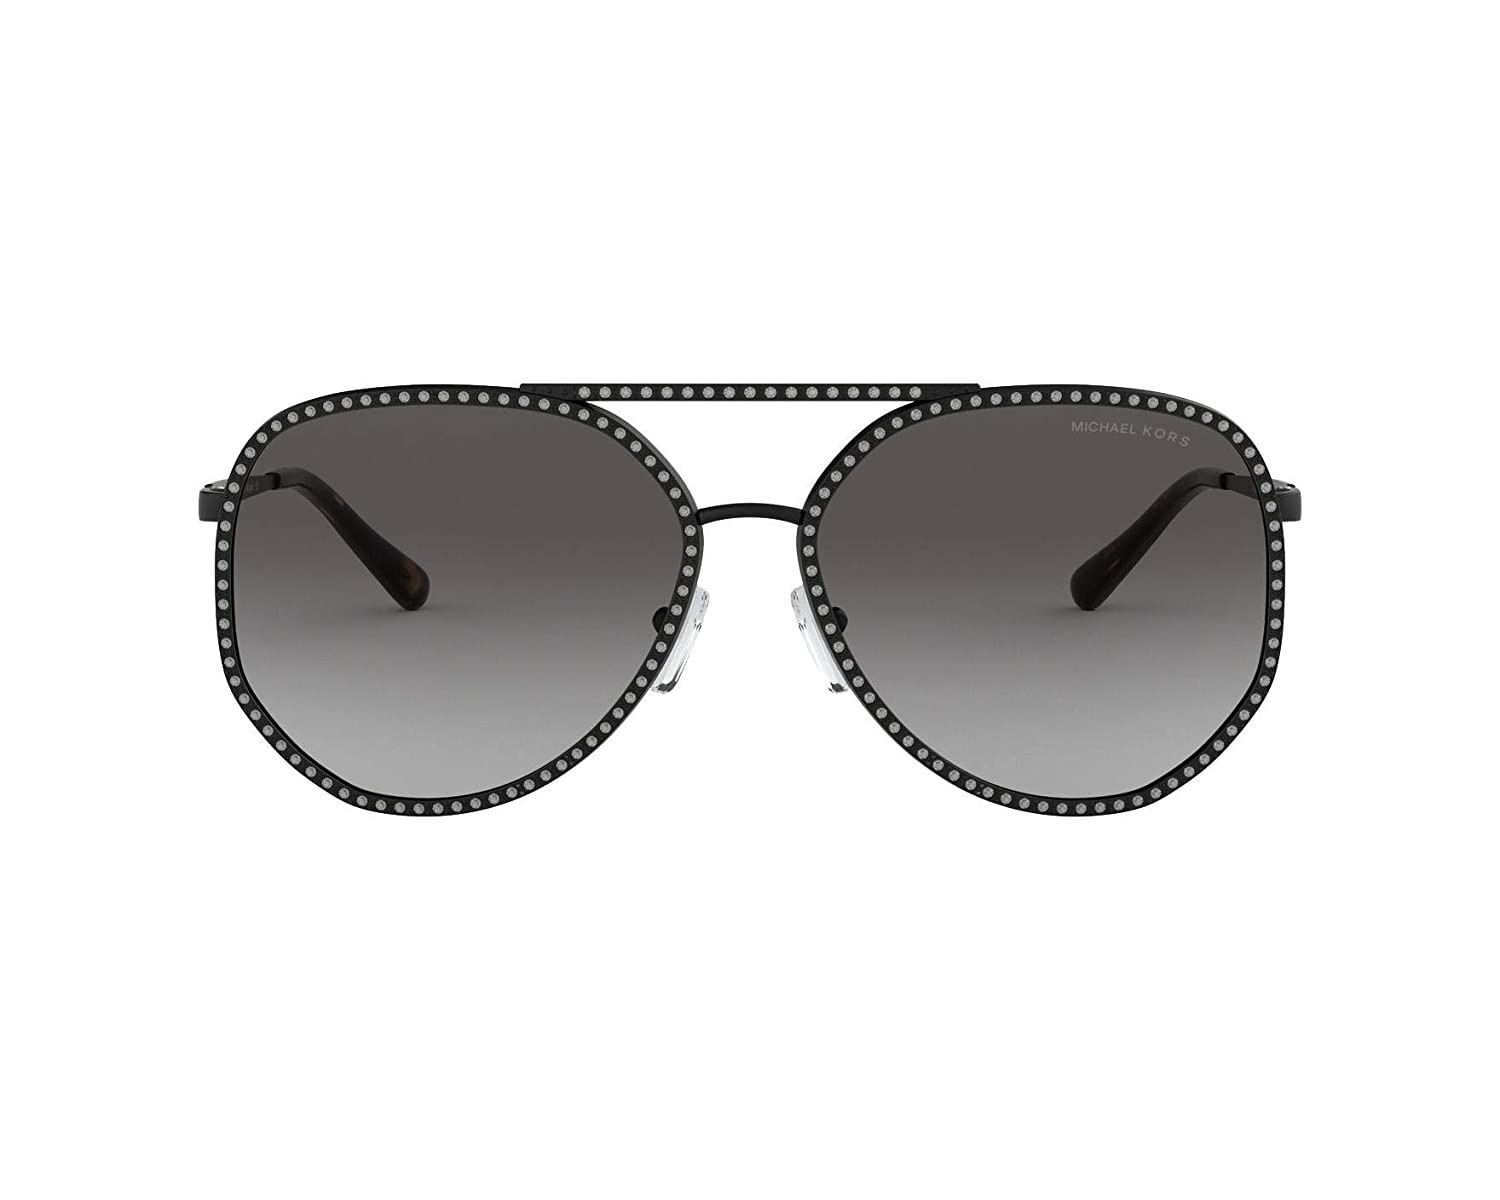 1c926d50a2 Amazon.com  Michael Kors Women s 0MK1039B 58mm Matte Black Light Grey  Gradient One Size  Clothing